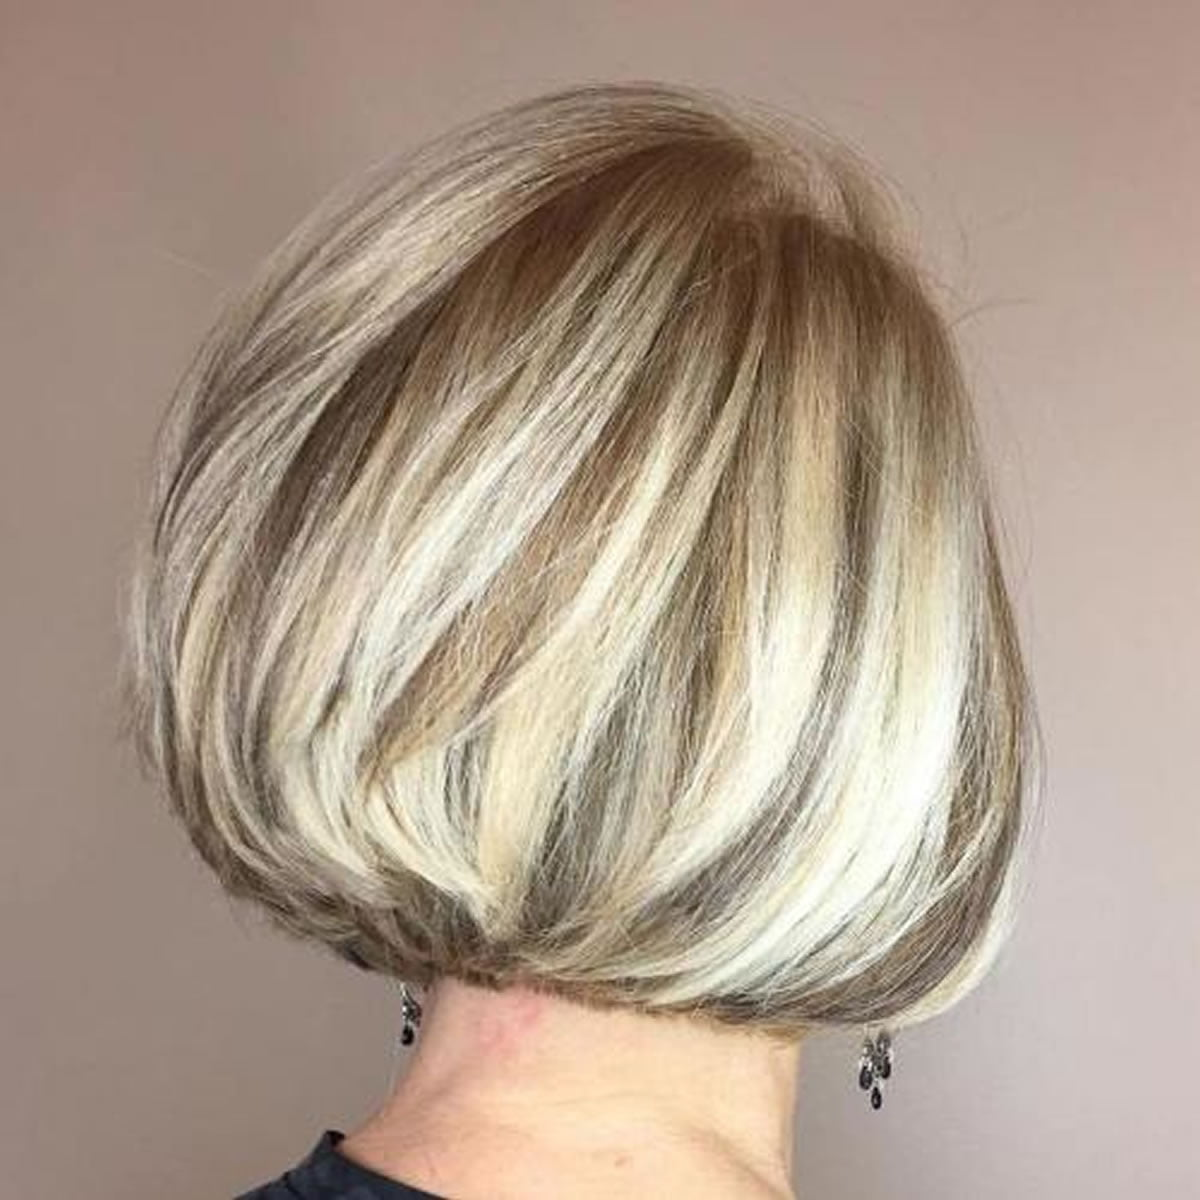 Newest hairstyles for over 50